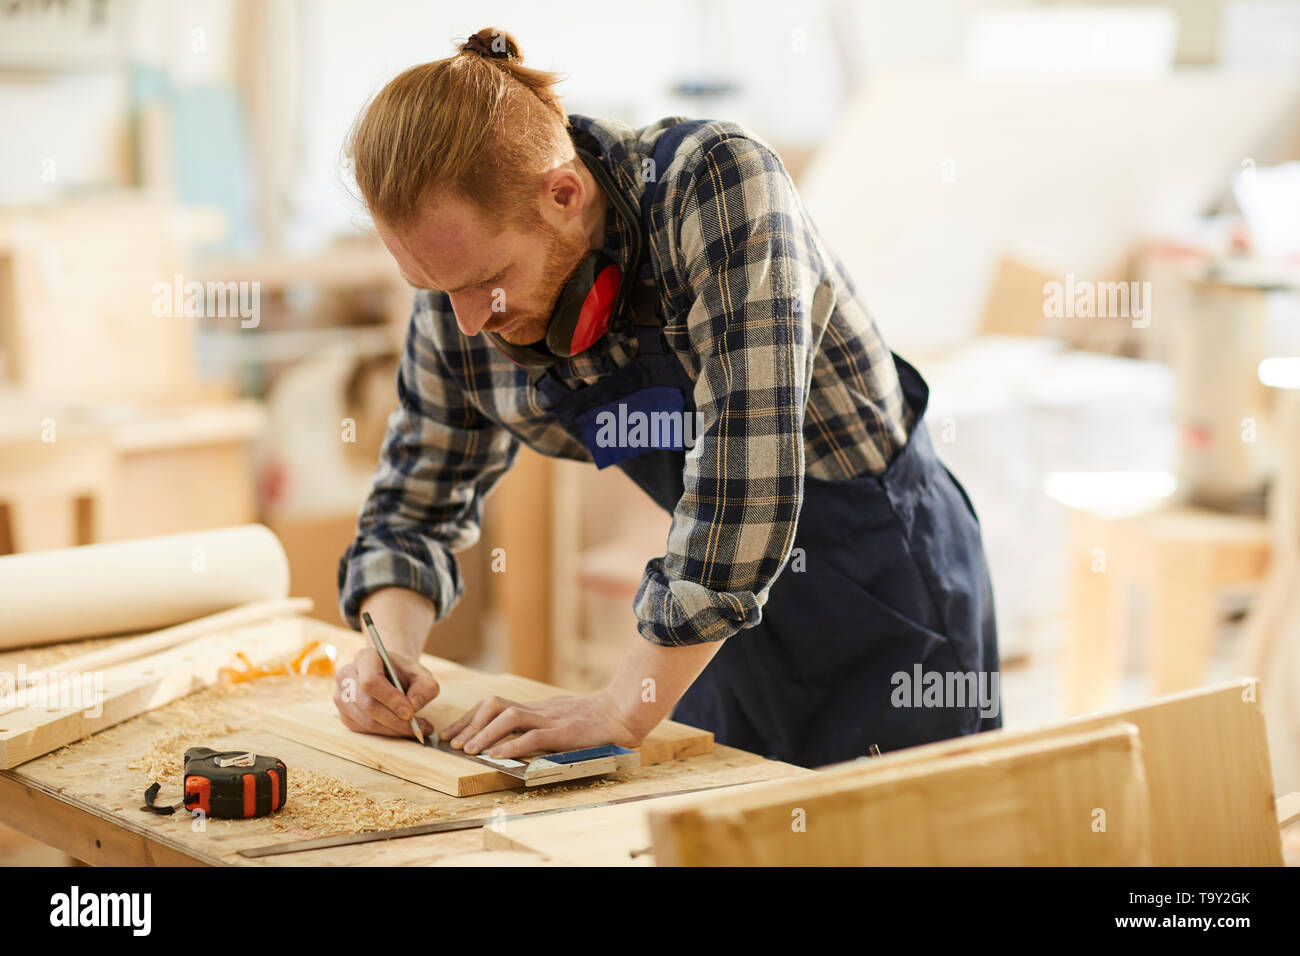 Portrait of modern carpenter marking wood while working in joinery lit by sunlight, copy space - Stock Image